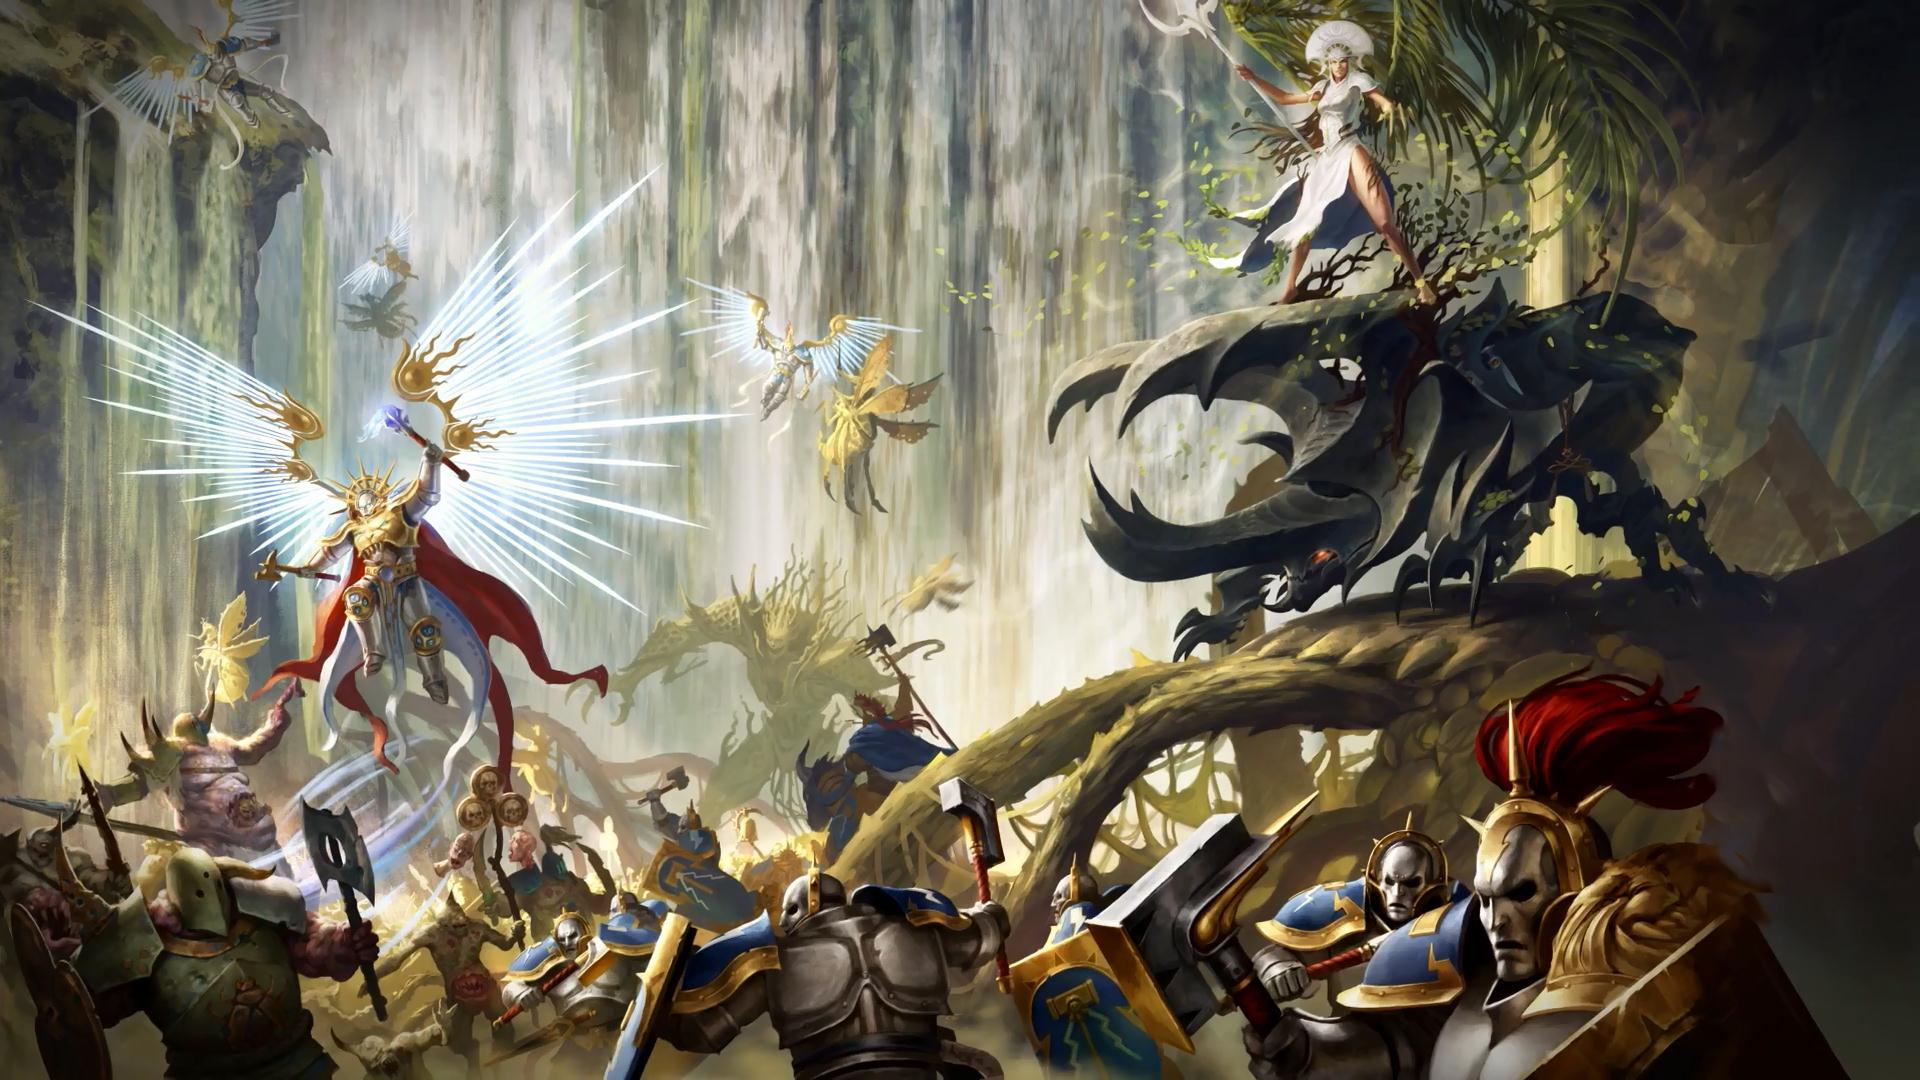 Post Age Of Sigmar Art 1178246 Hd Wallpaper Backgrounds